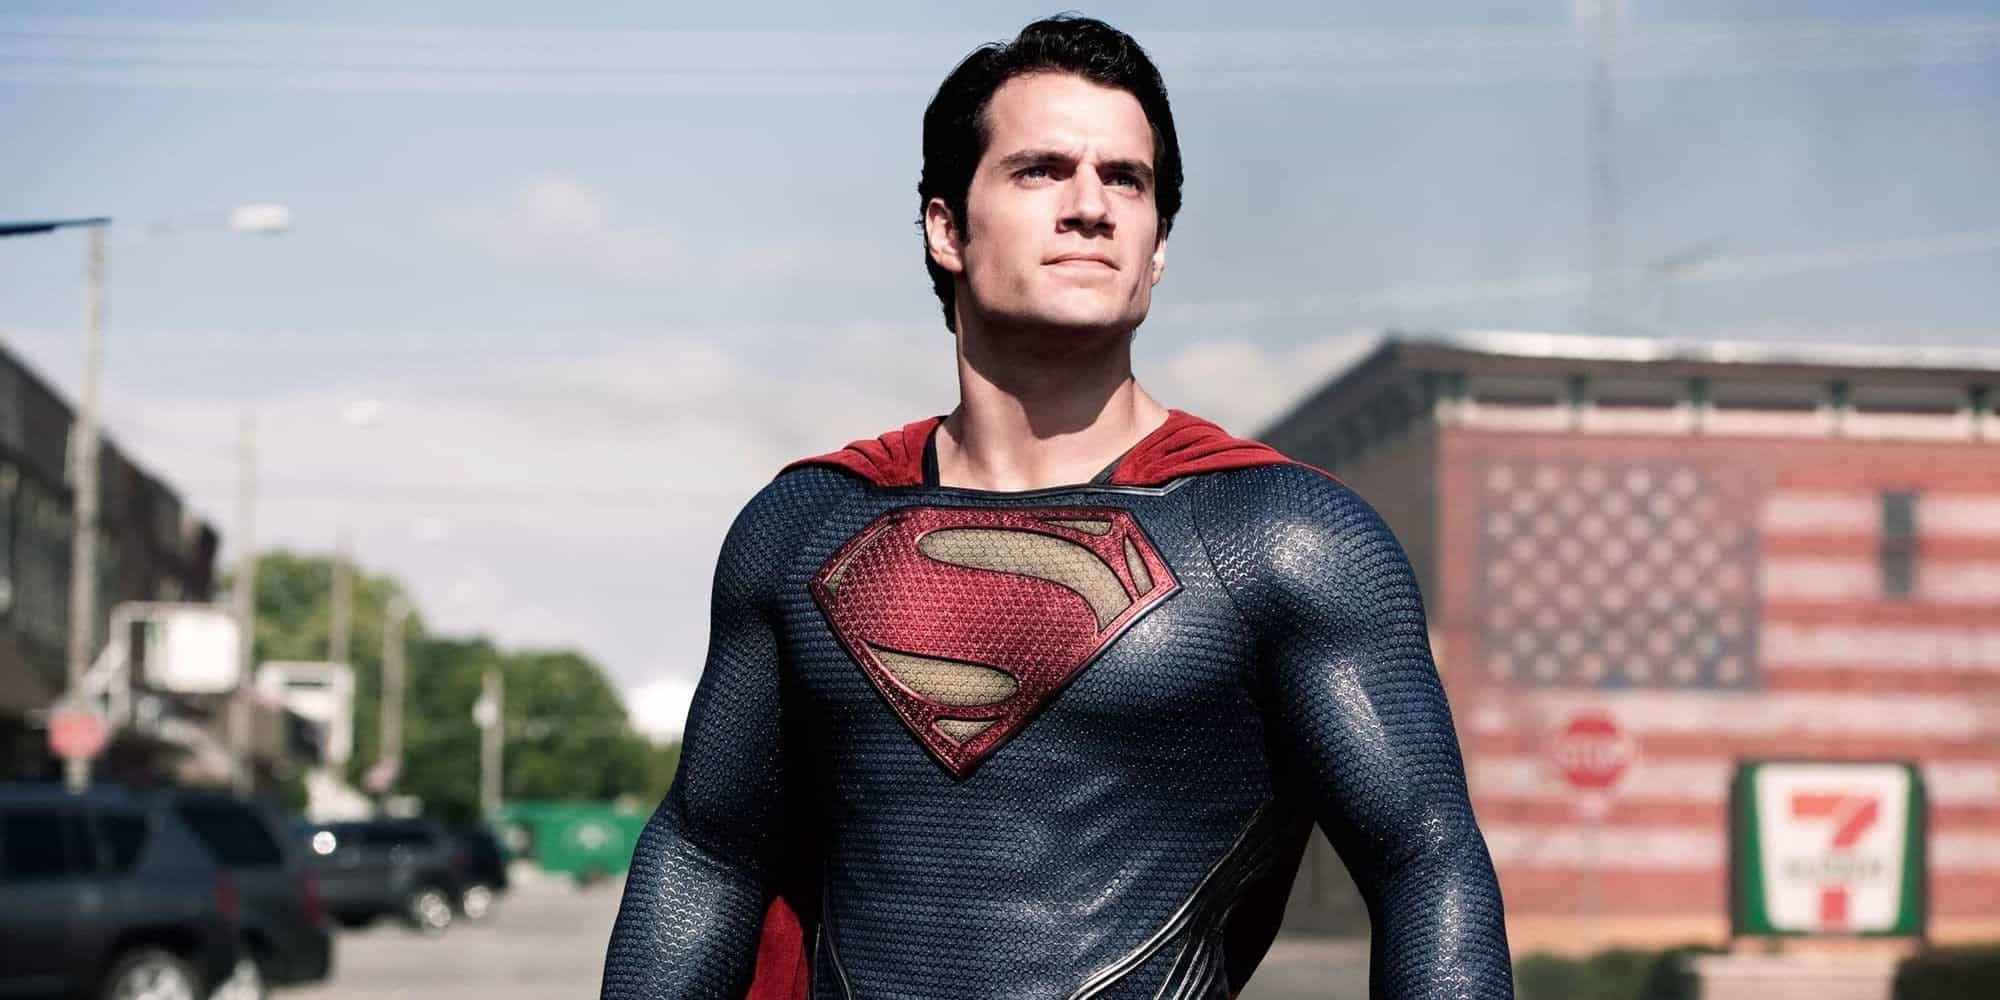 Henry Cavill Snyder Cut Future Superman Shirt Man of Steel Deny Rumors